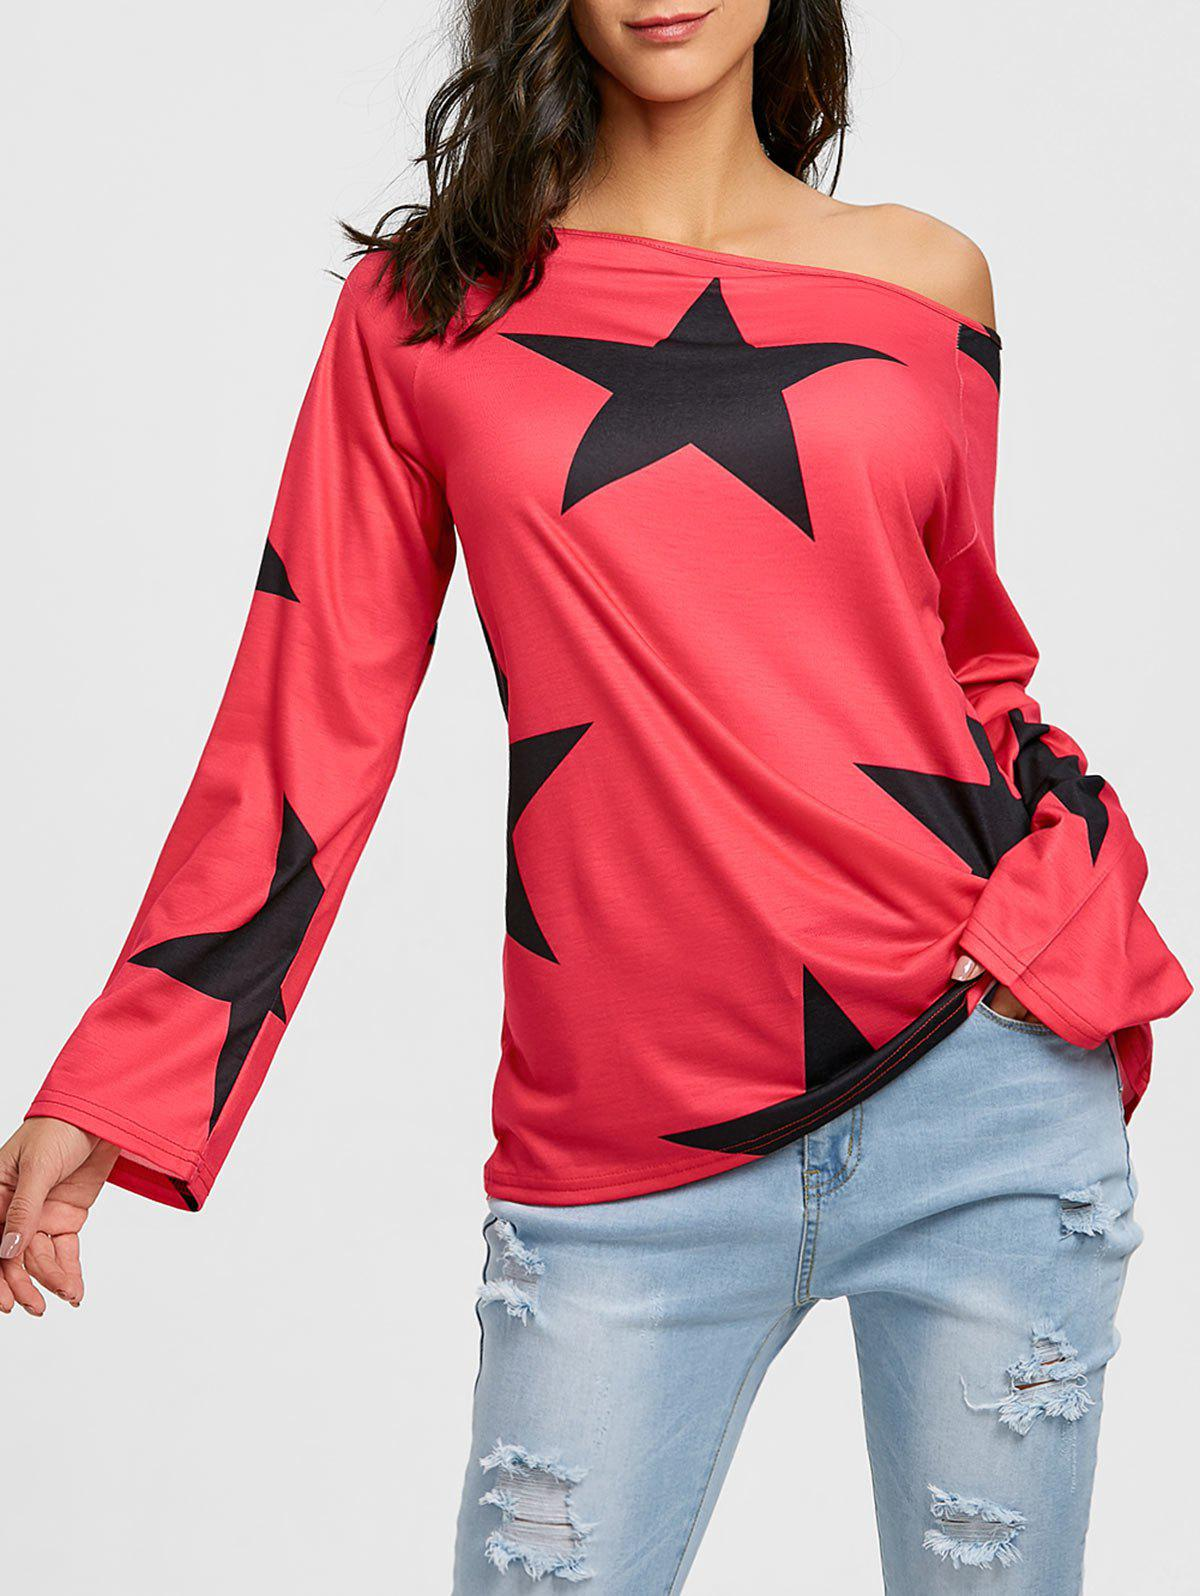 Star Print Raglan Sleeve Tunic T-shirt - RED S